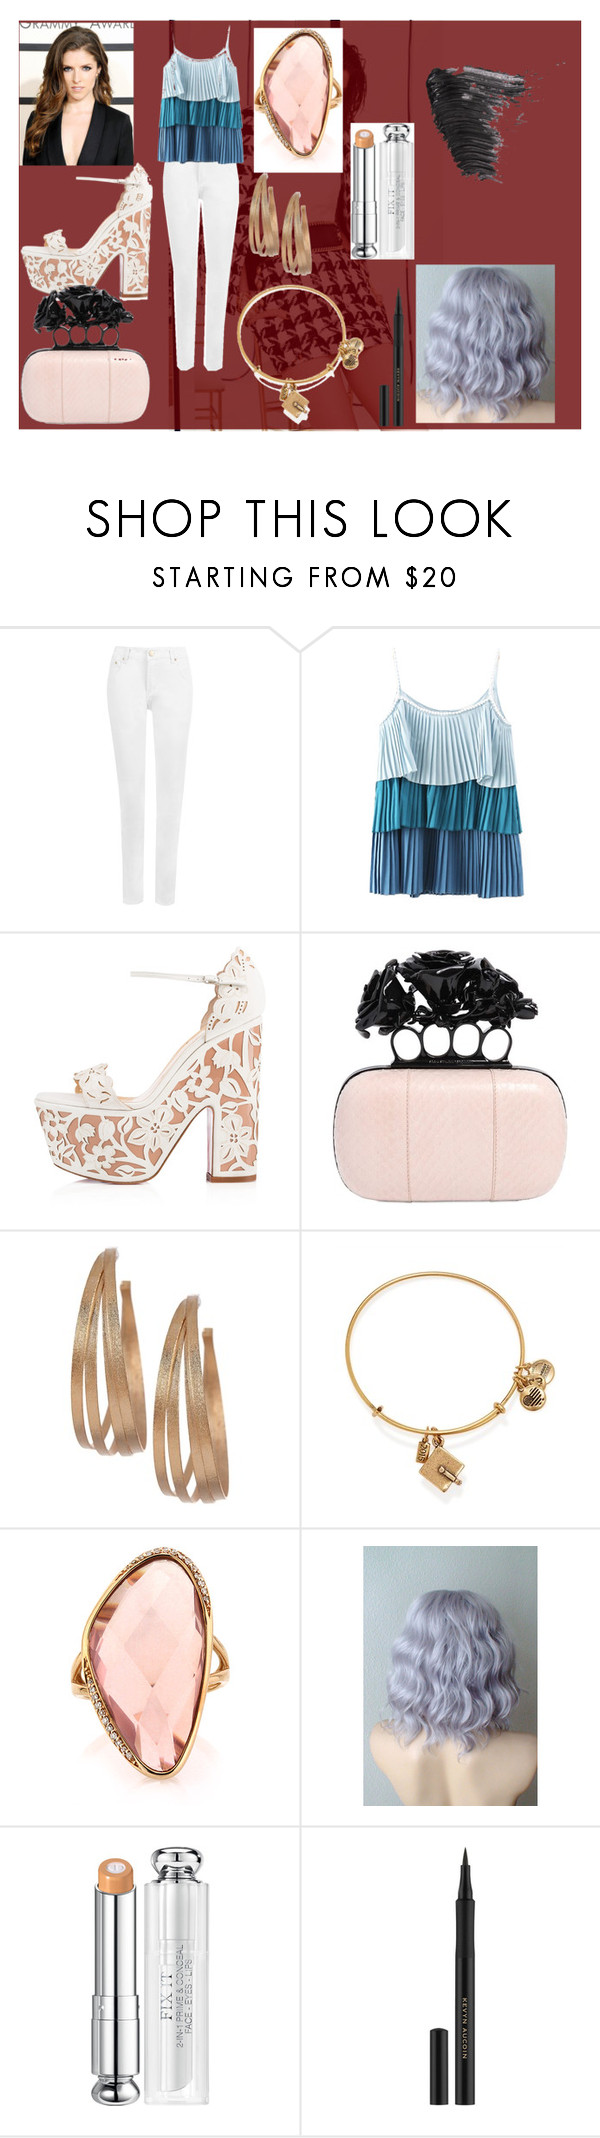 """is about something that"" by evacristelo on Polyvore featuring Balmain, WearAll, Chicnova Fashion, Christian Louboutin, Alexander McQueen, Rivka Friedman, Alex and Ani, Mark Broumand, Christian Dior and Kevyn Aucoin"